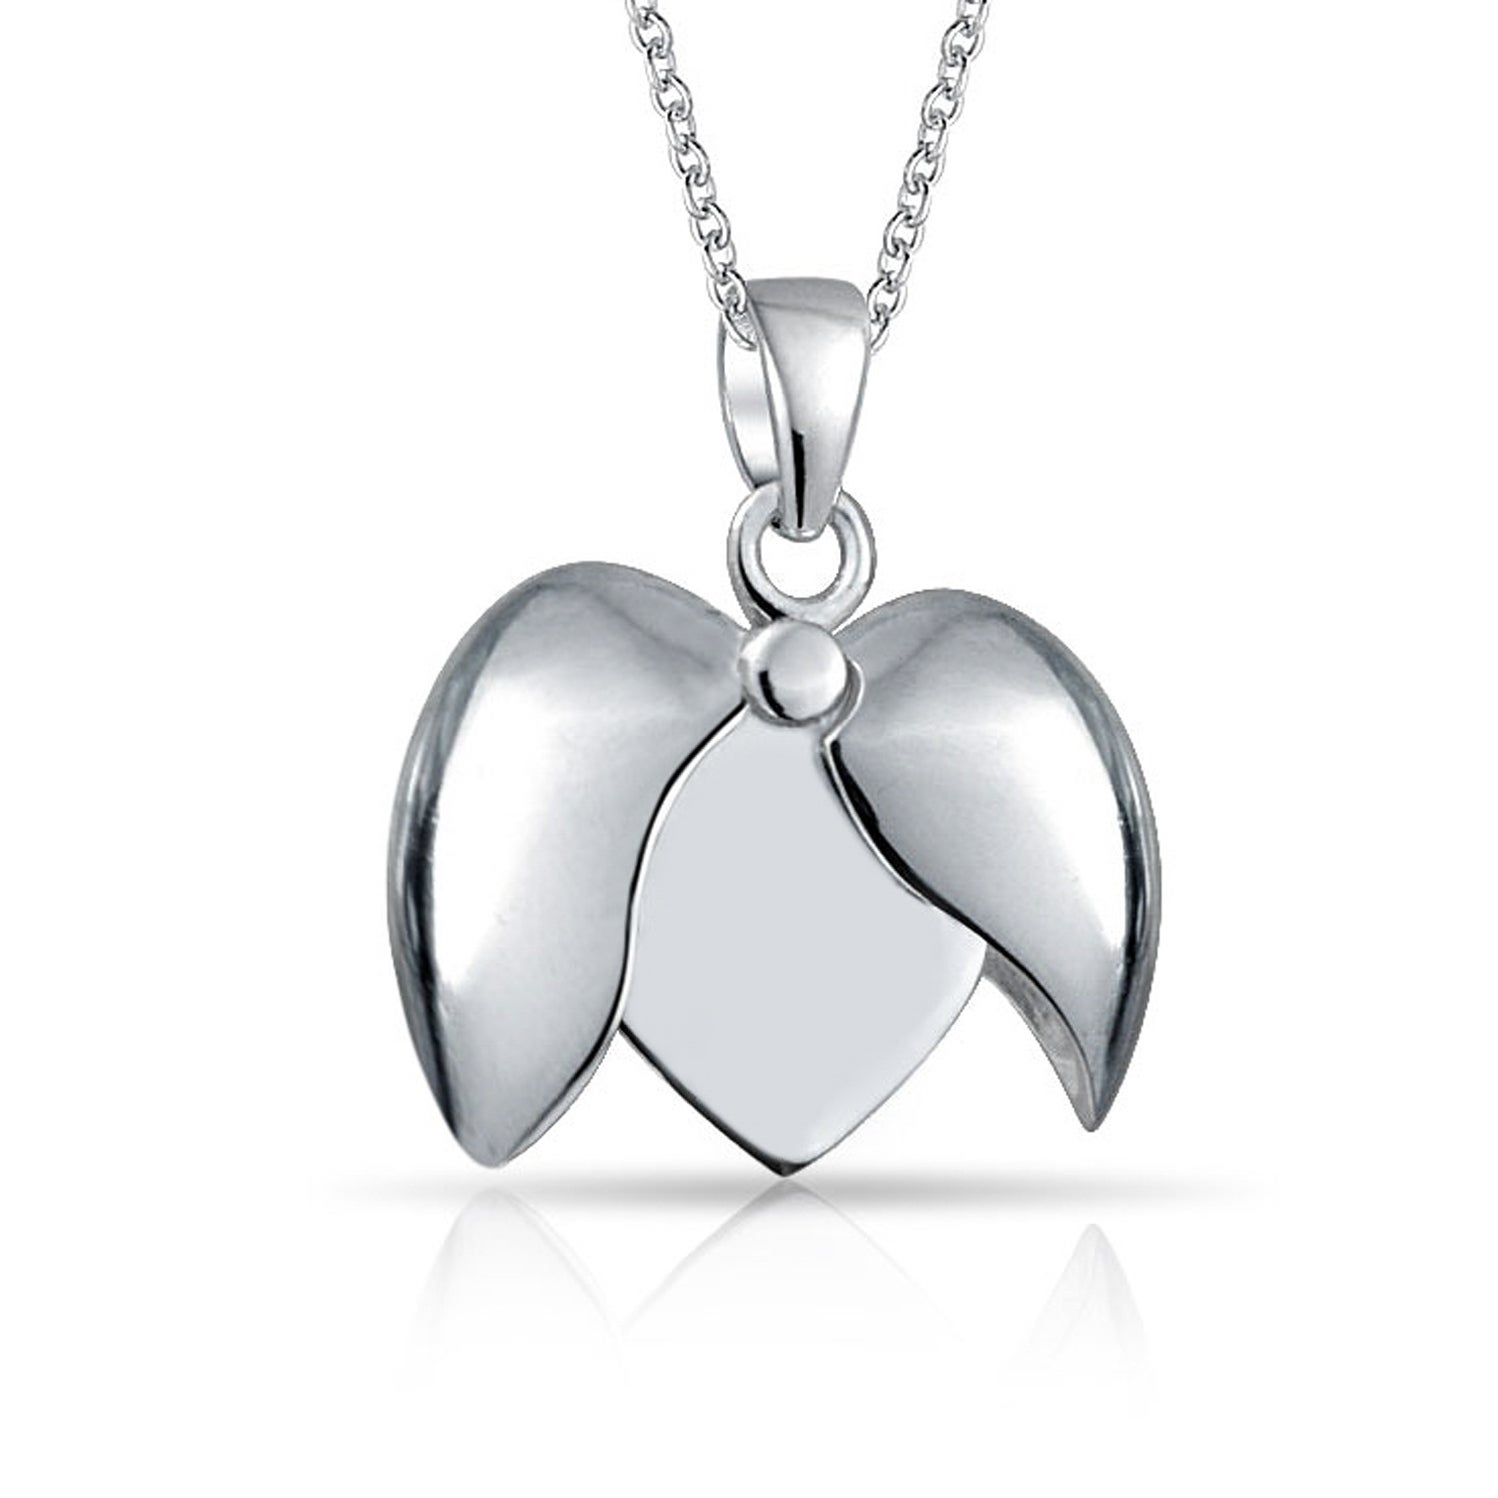 Sterling Silver Diamond and Swiss BT Heart Charm Pendant